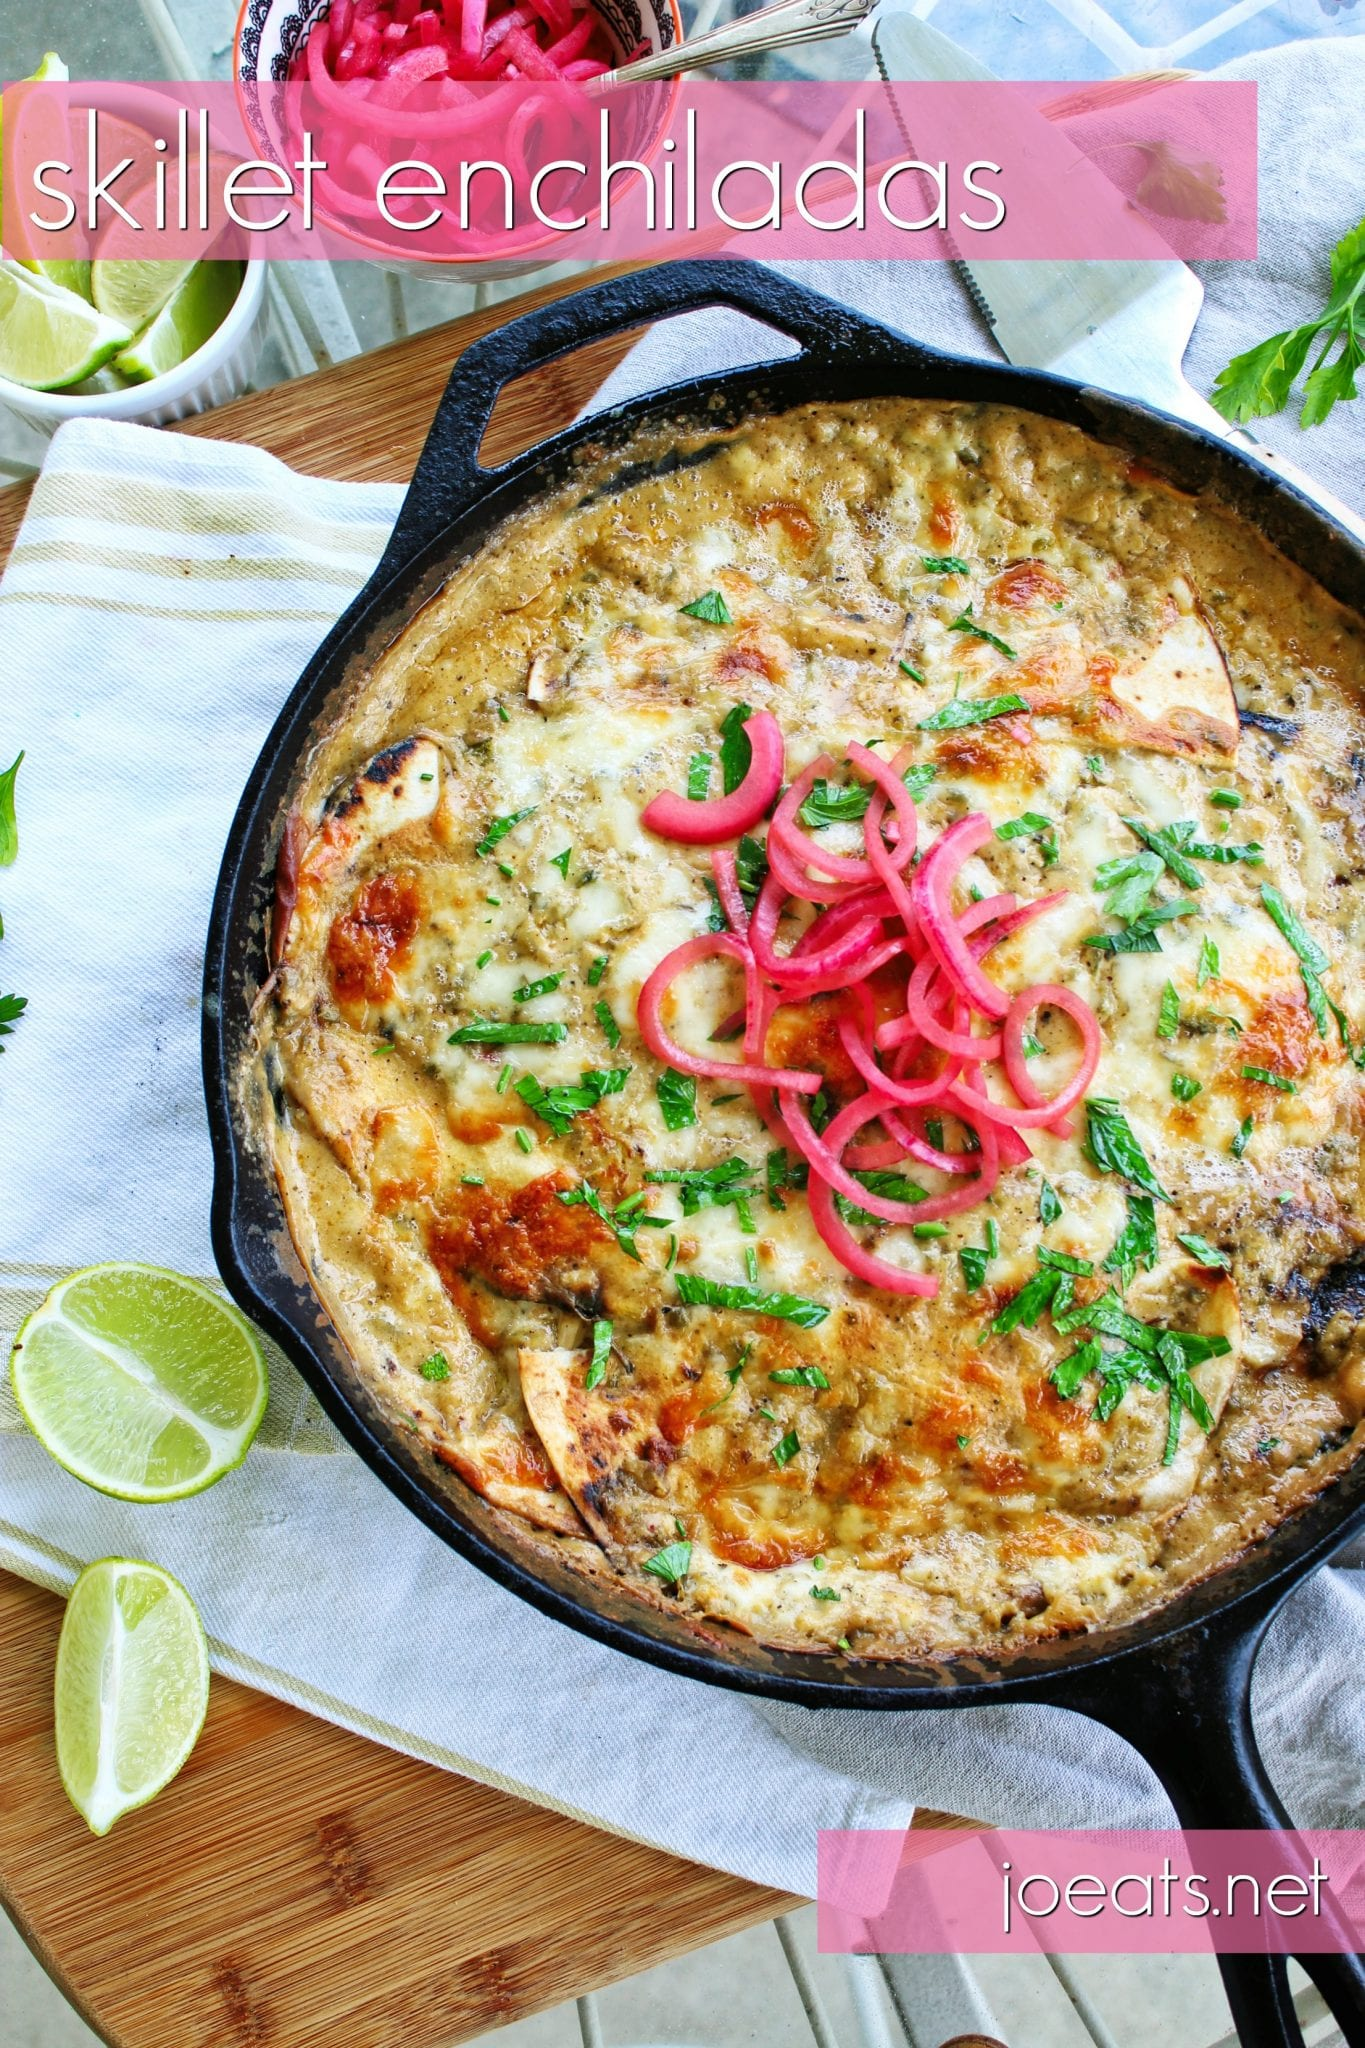 Creamy, cheesy, a little spicy, and totally delicious, these one pan skillet enchiladas are a mid-week make-ahead miracle. #weeknightmeal #mealprep #makeahead #enchiladas #skilletenchiladas #chickendinner #mexicanfood #chickenenchiladas #onepot #onepotmeal #onepotrecipe #enchiladarecipe #skilletenchiladarecipe #chickenenchiladarecipe